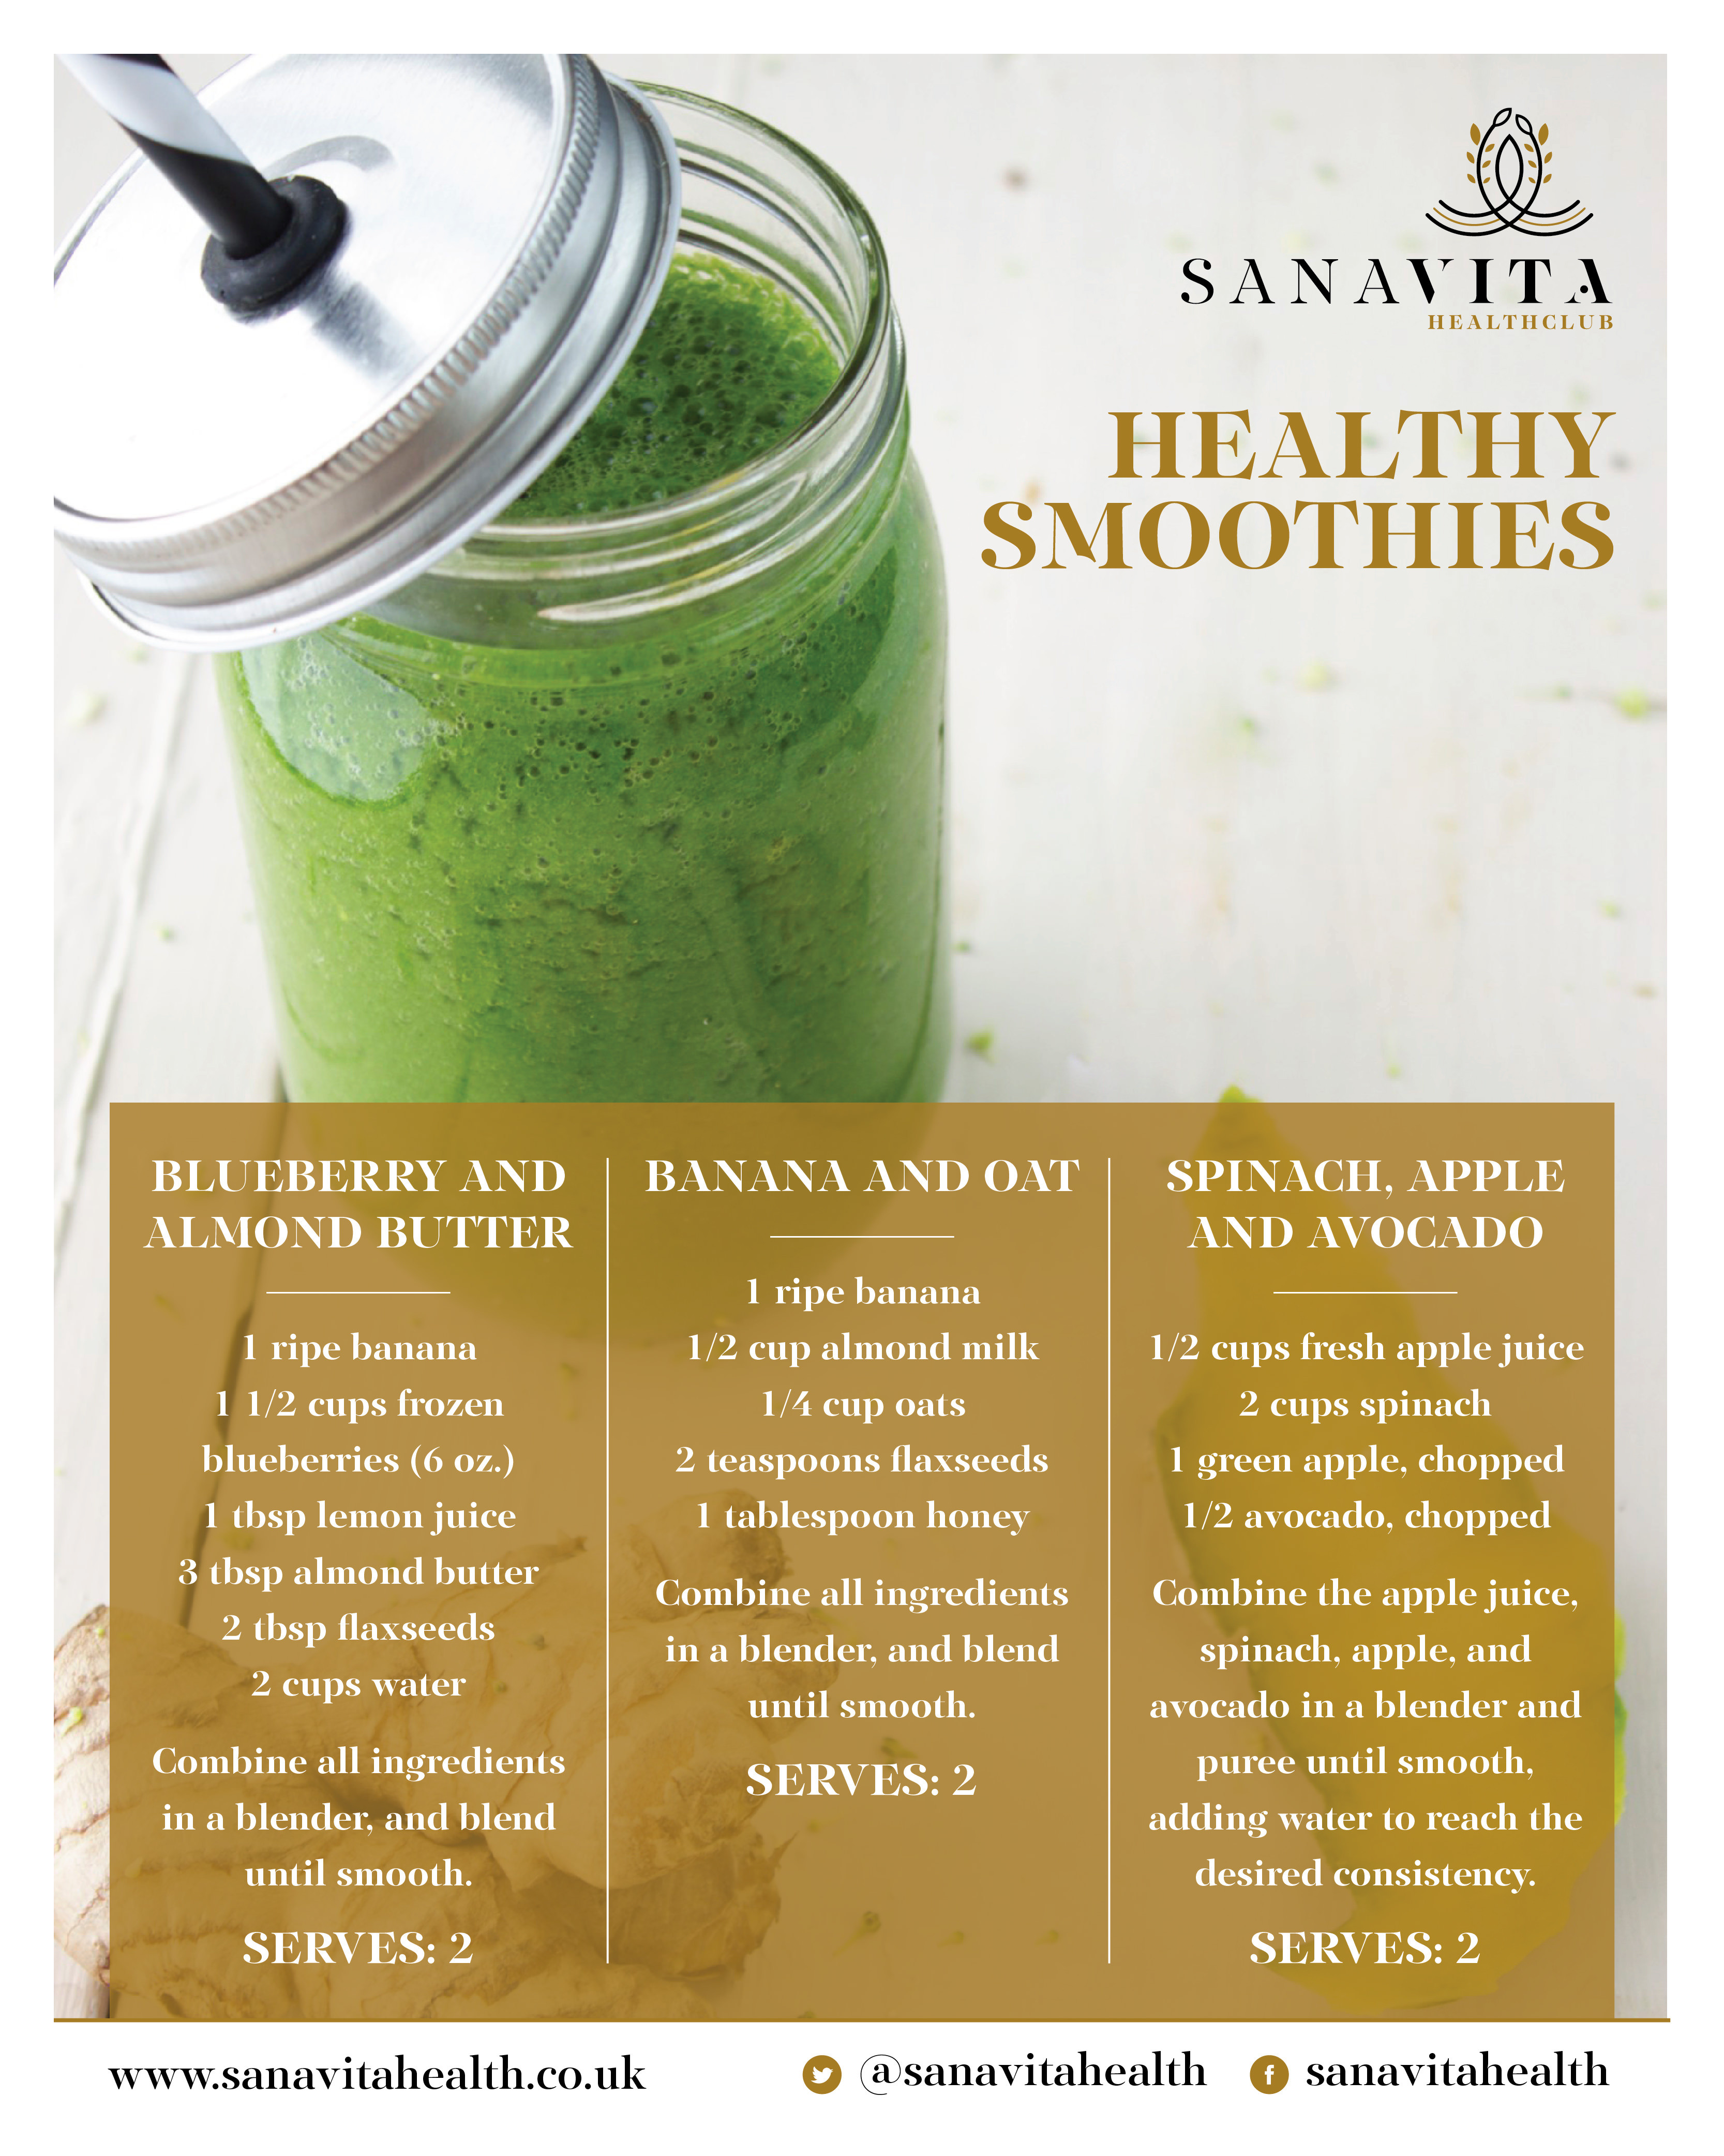 Smoothie Recipes Healthy  Sana Vita Health Club